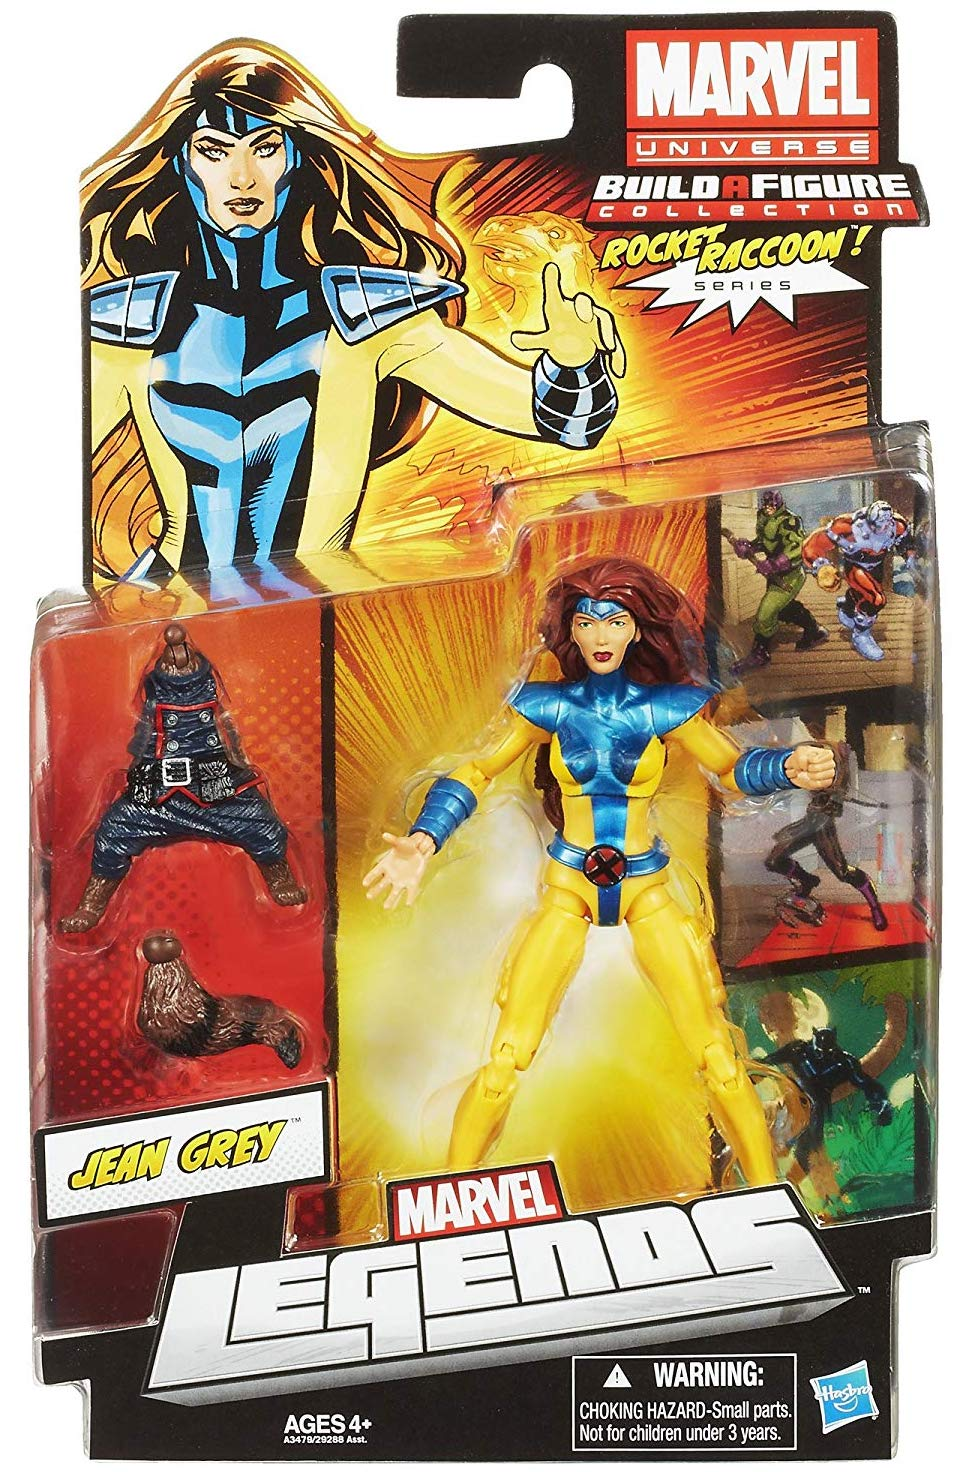 Marvel Legends Rocket Raccoon Series Jean Grey + Variants